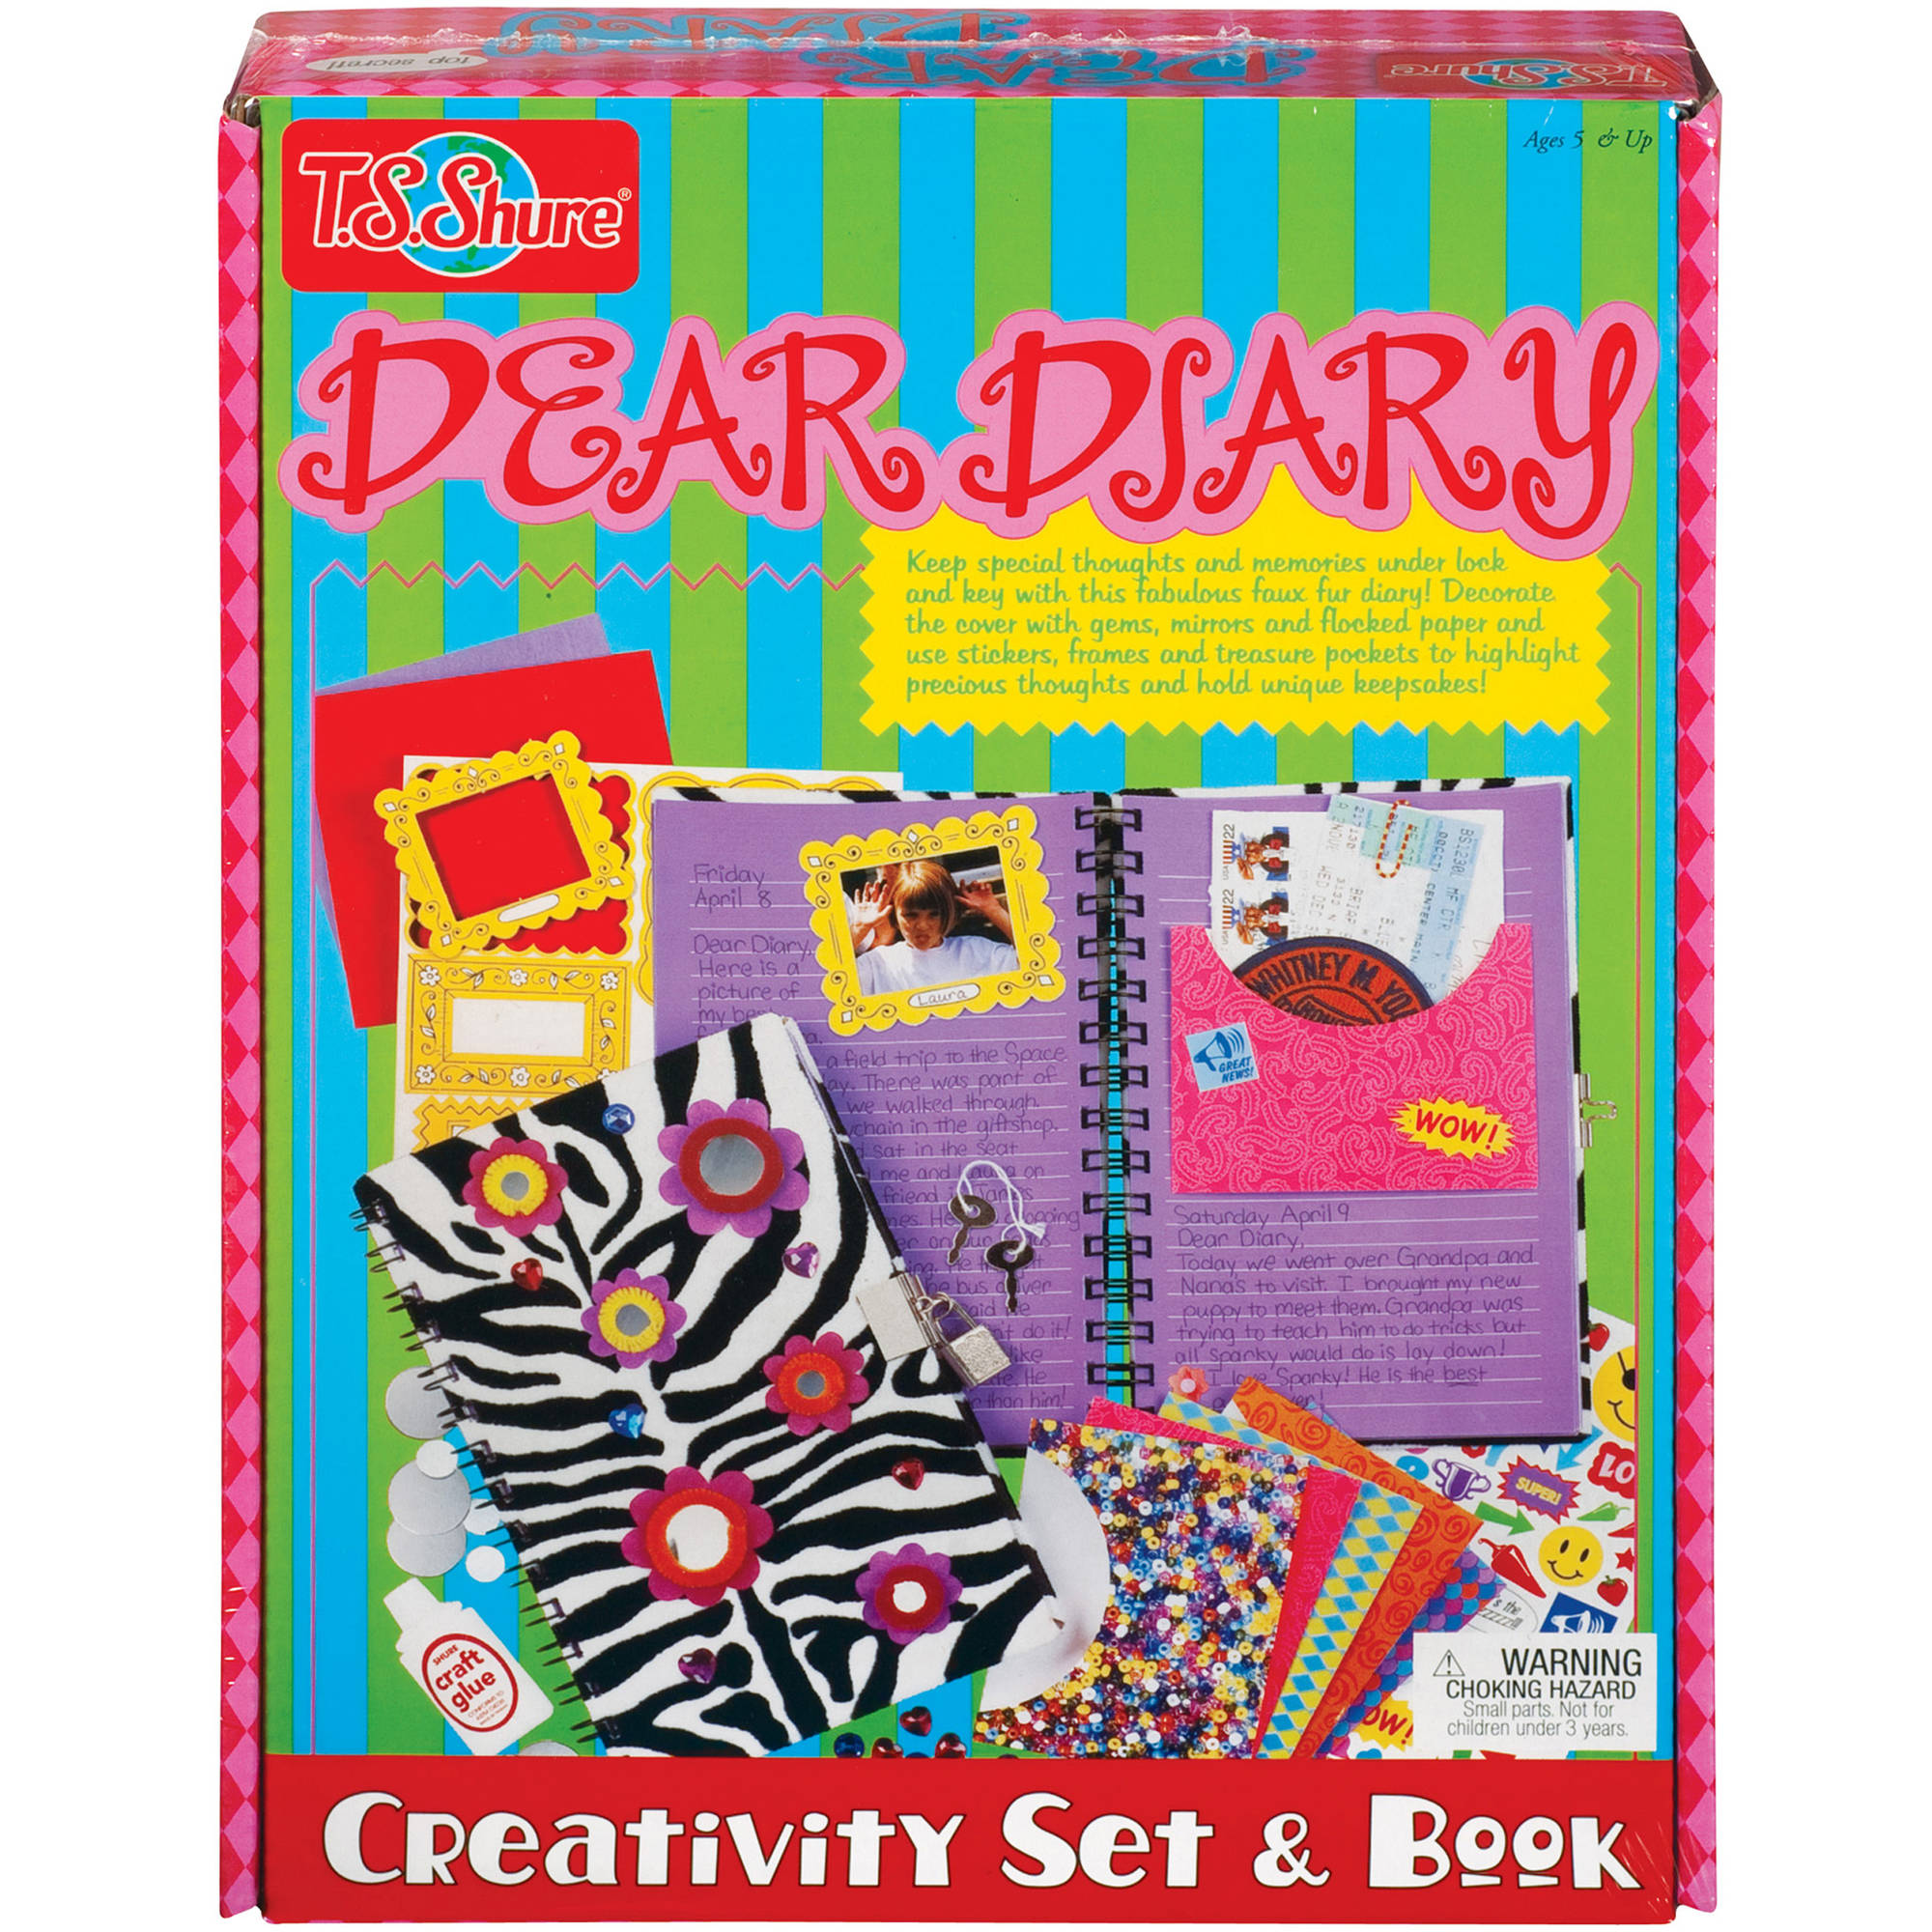 T.S. Shure Dear Diary Creativity Set and Book